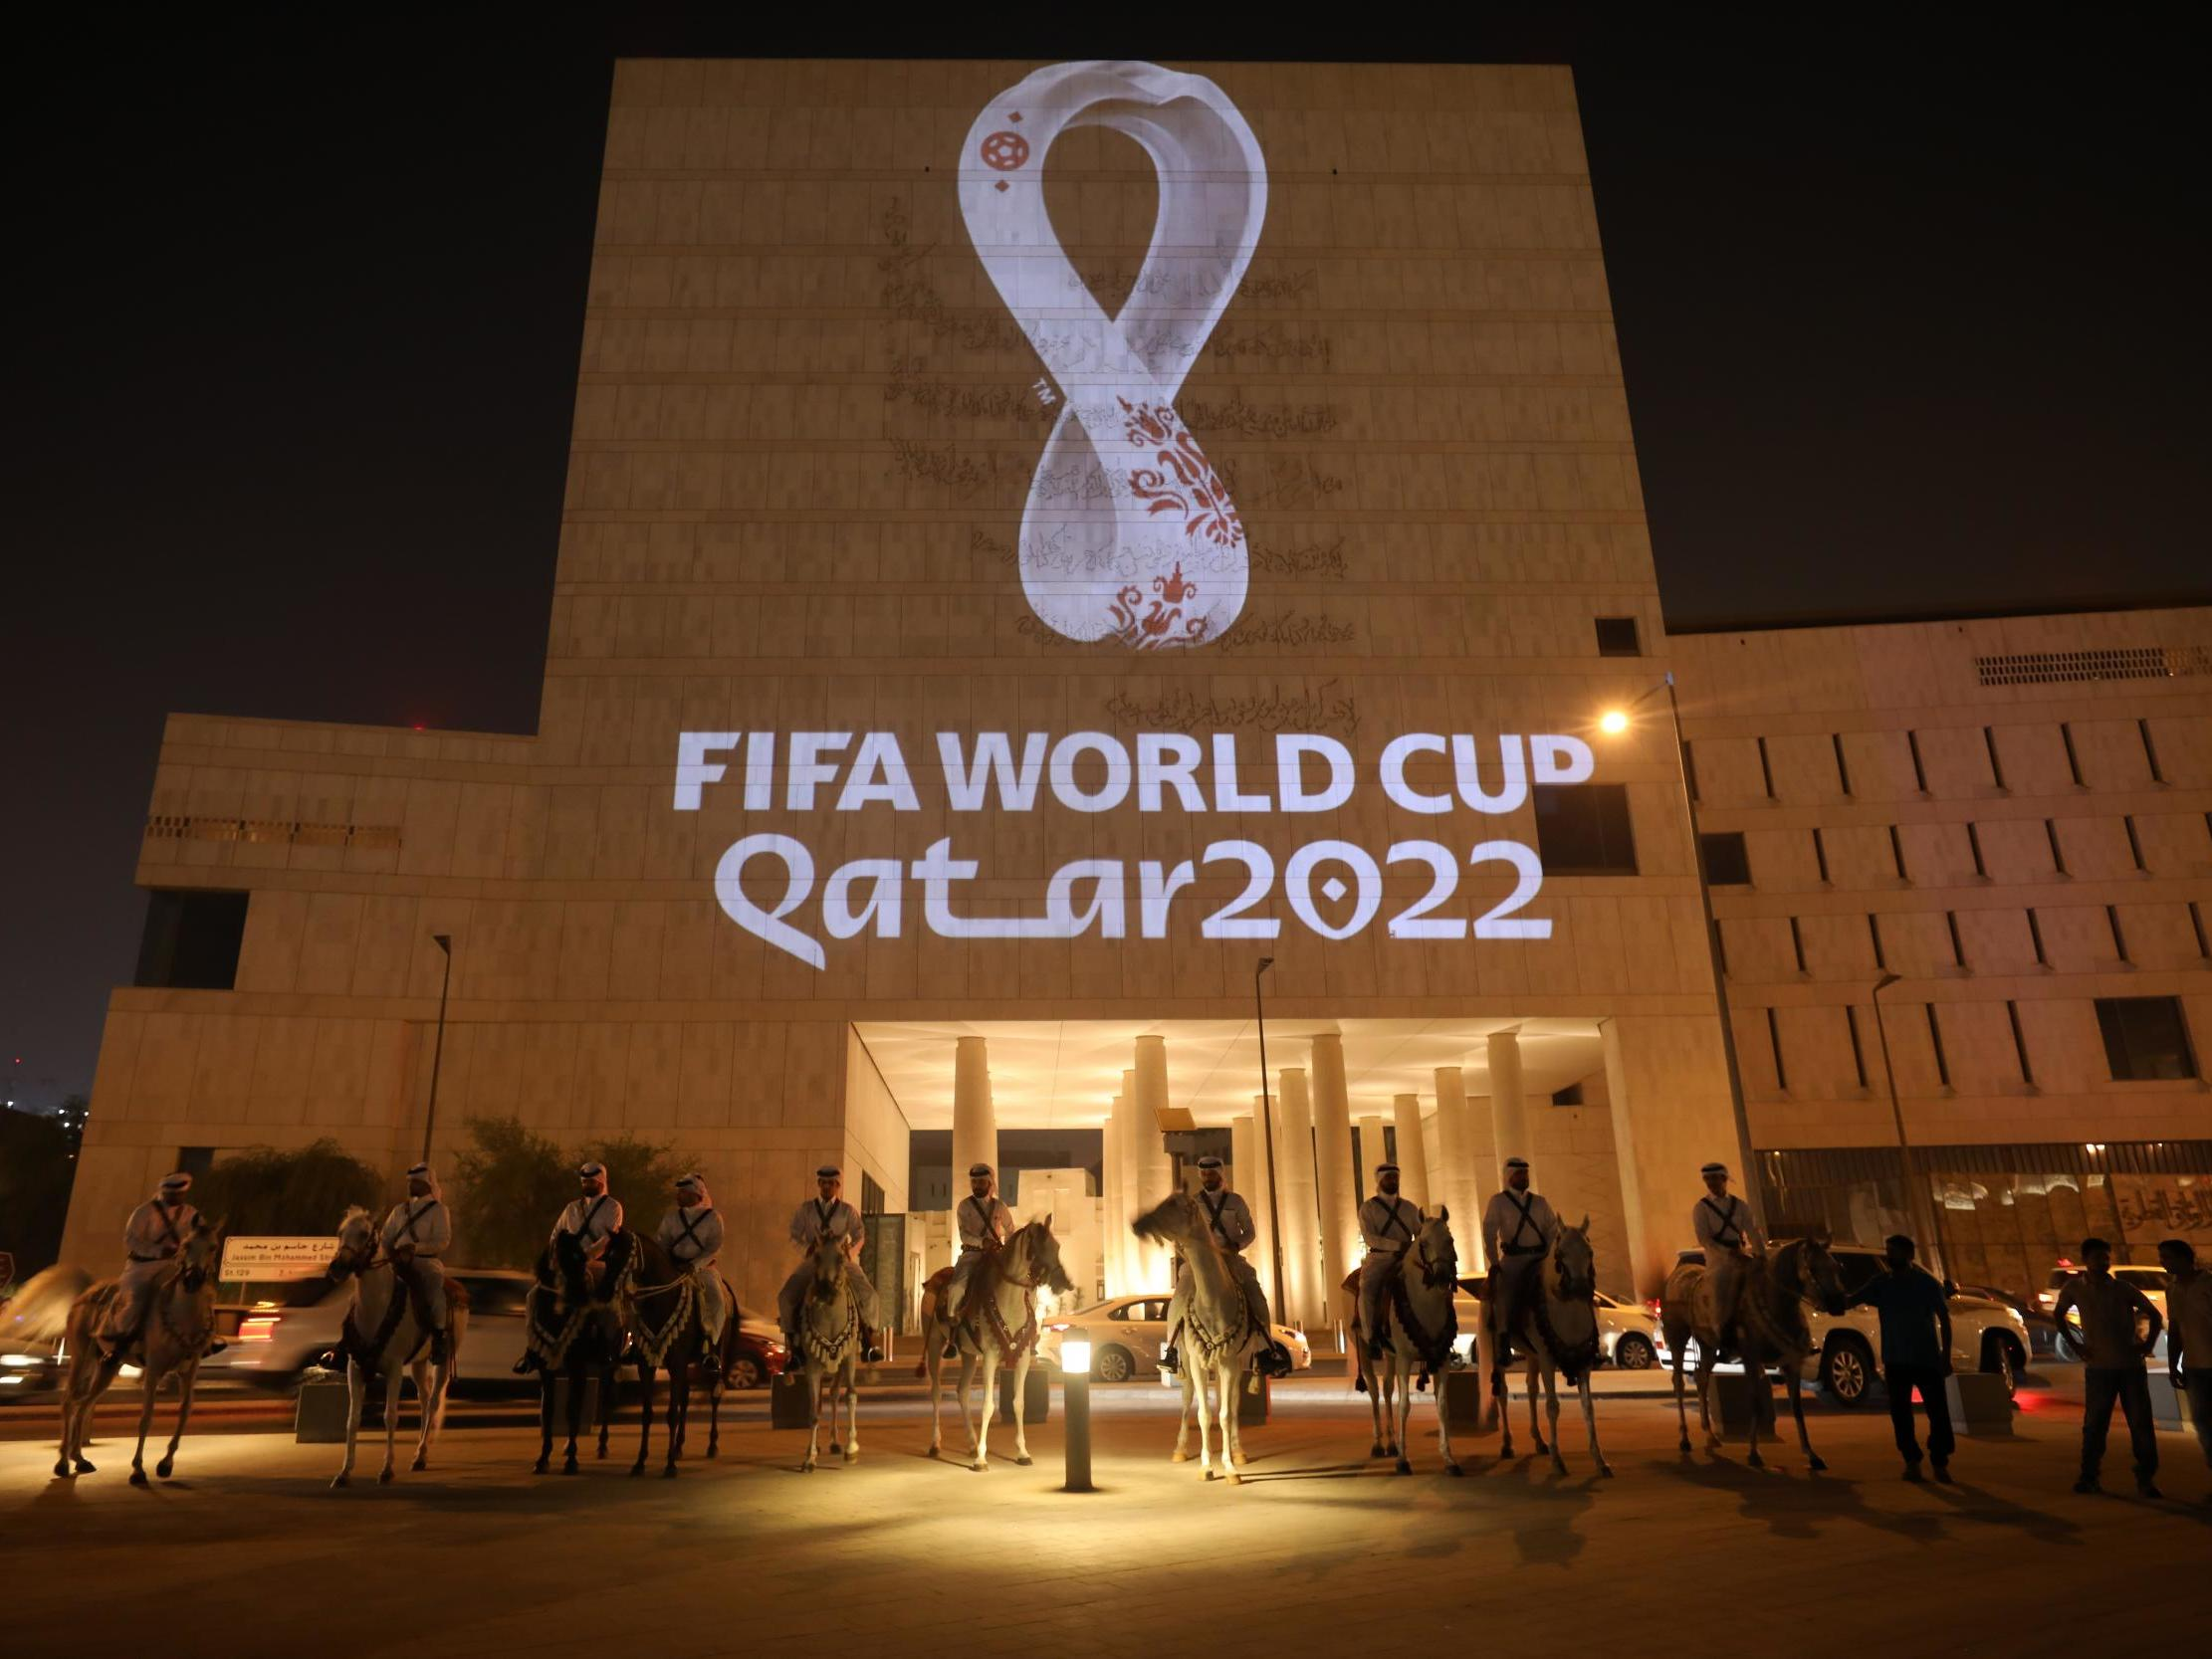 Fifa facing scrutiny after exposing hundreds of fans to criminal prosecution for attending Qatar World Cup dress rehearsal